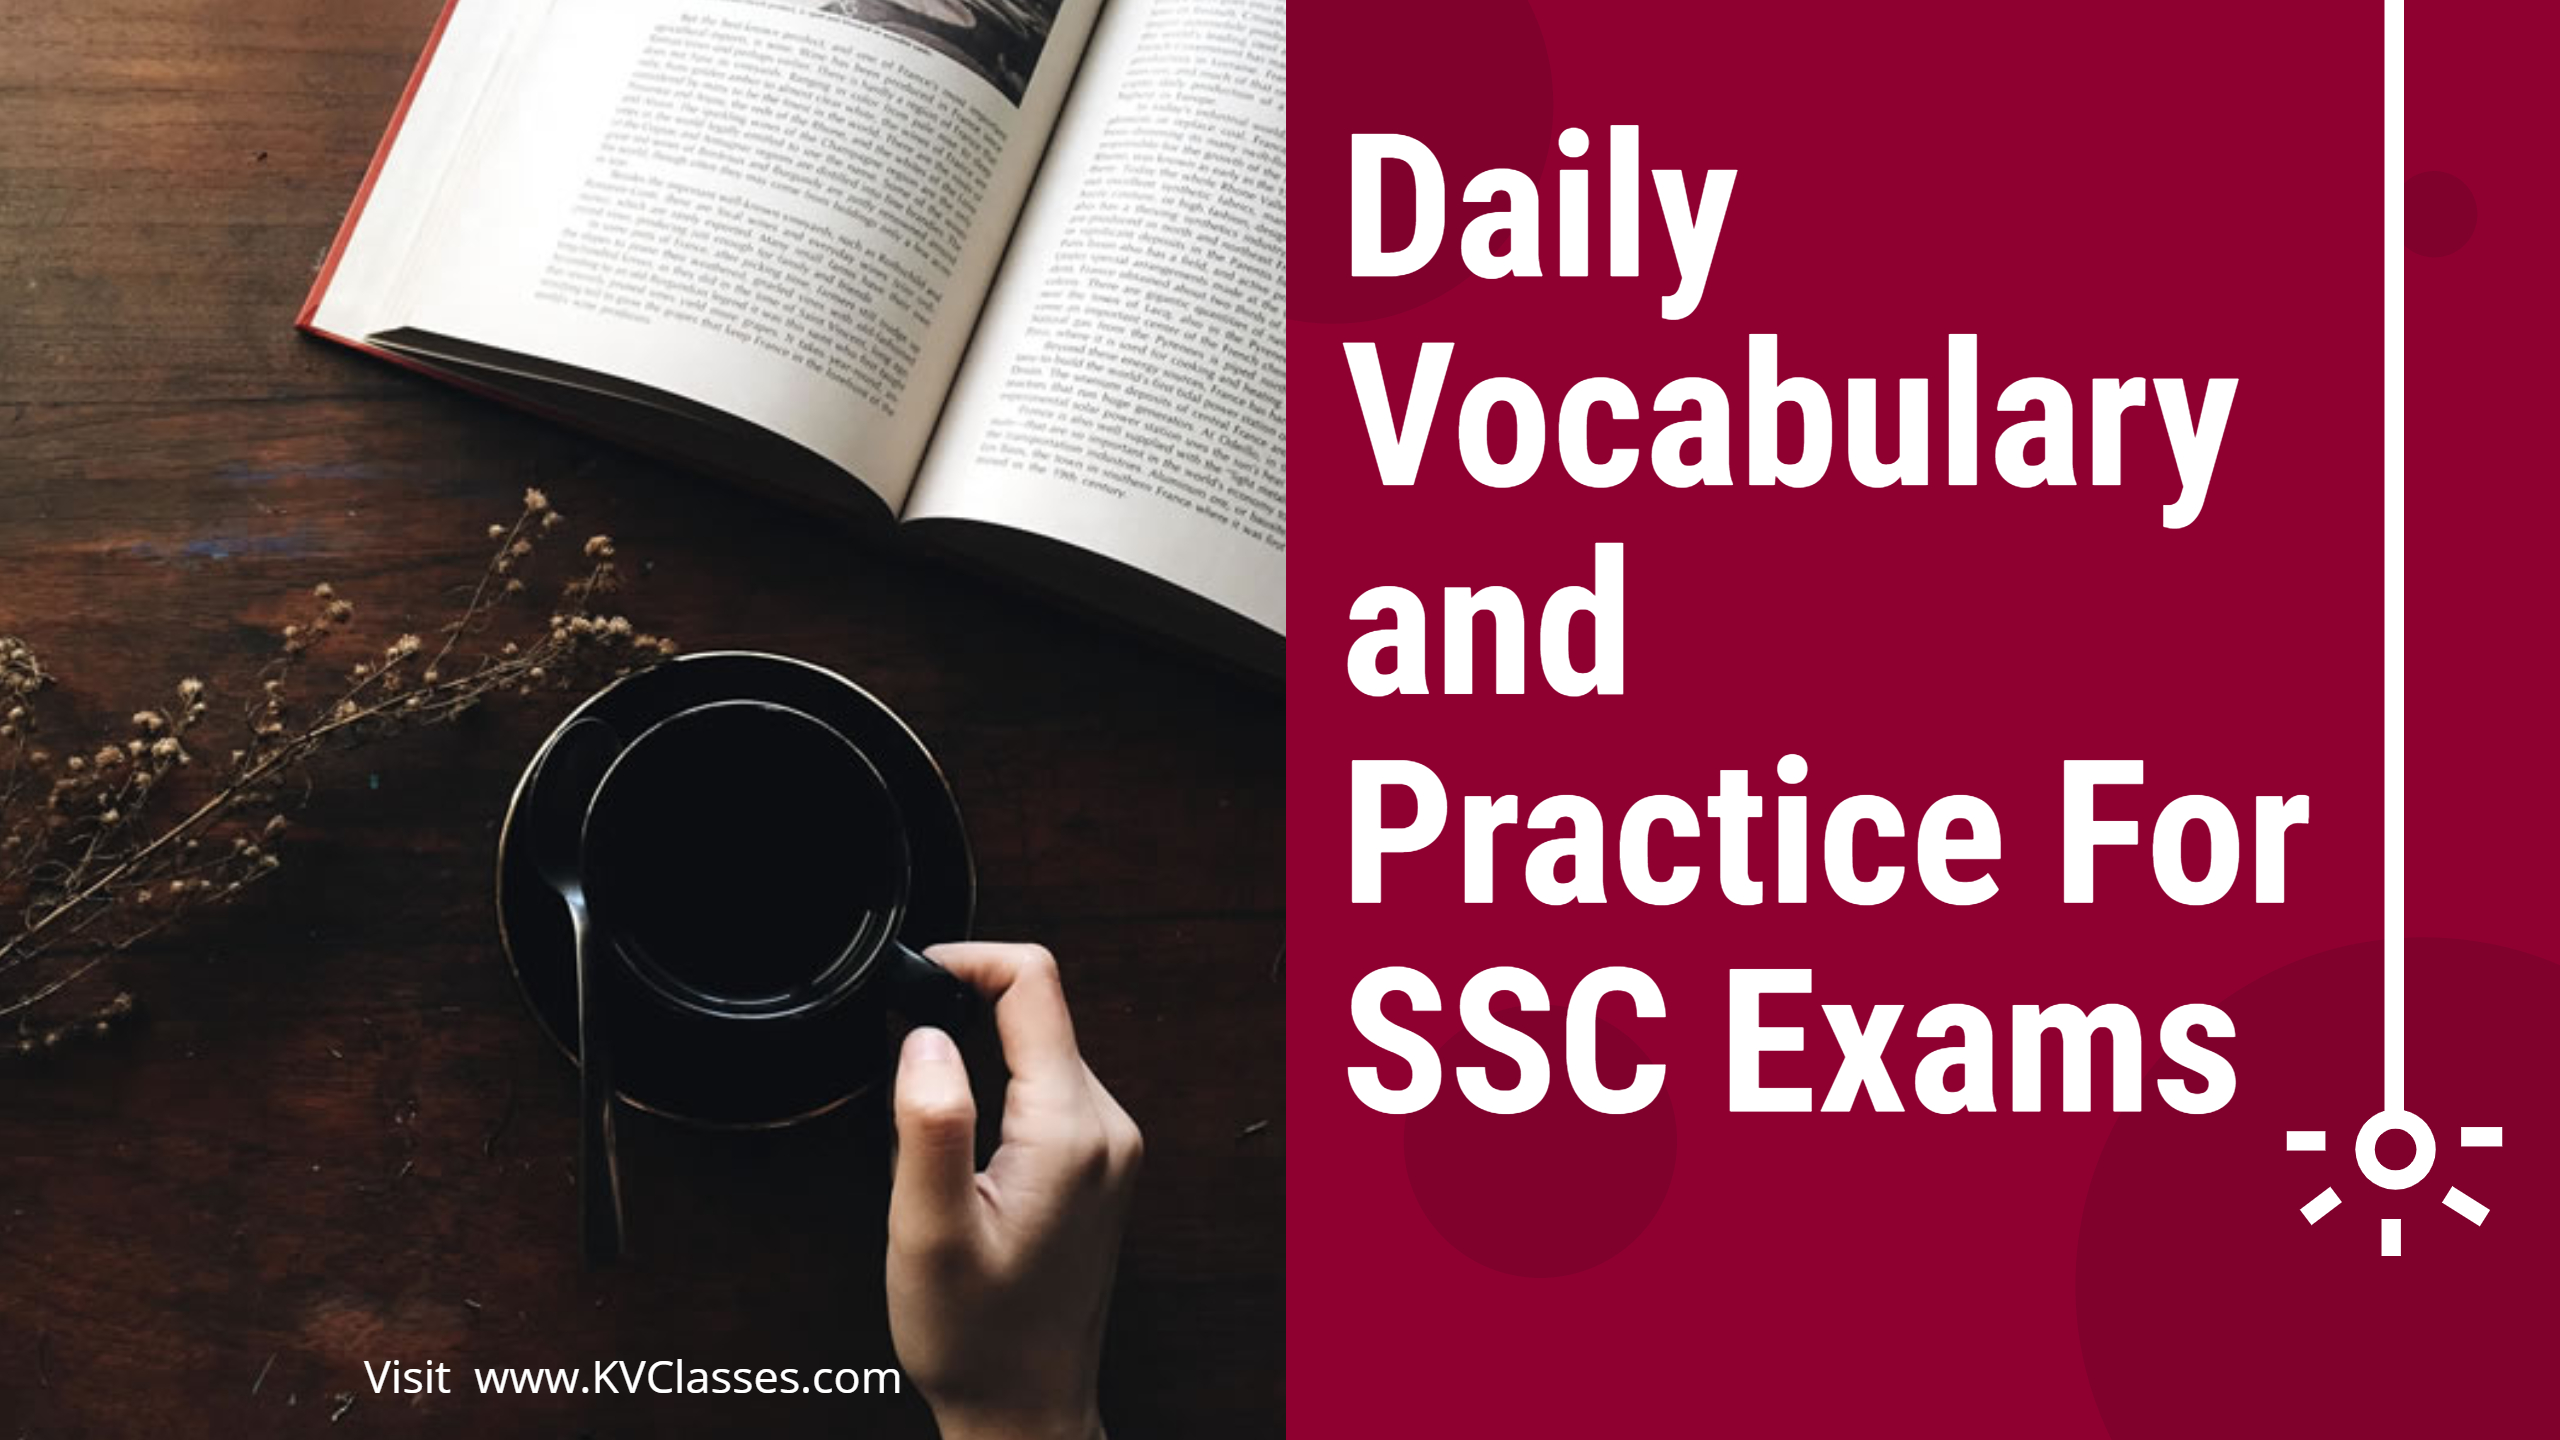 Daily Vocabulary & Practice For SSC Exams: 26 Feb 2019 - KVClasses